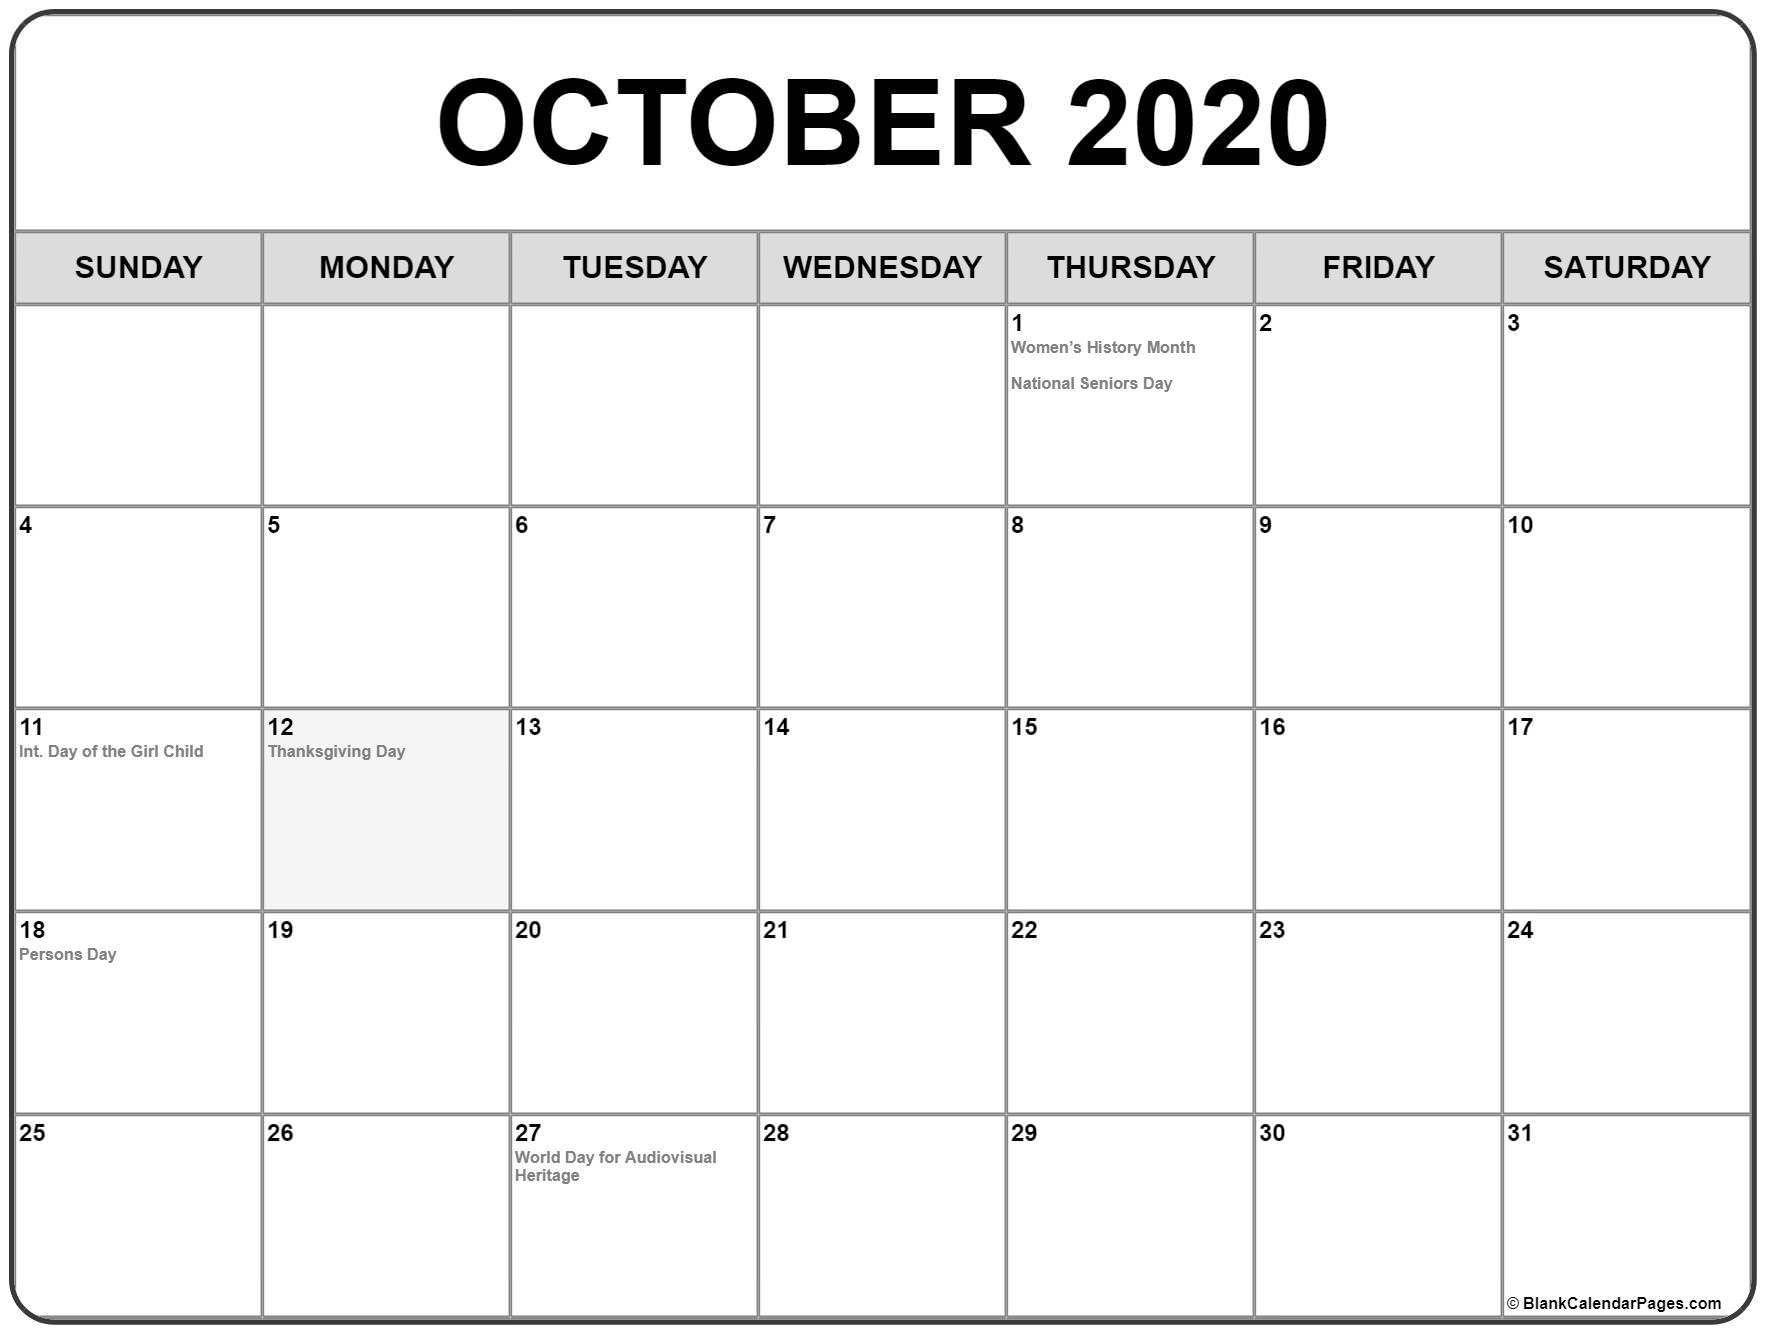 Calendars Michel Zbinden 2020 | Calendar For Planning pertaining to Michel Zbinden Calendar